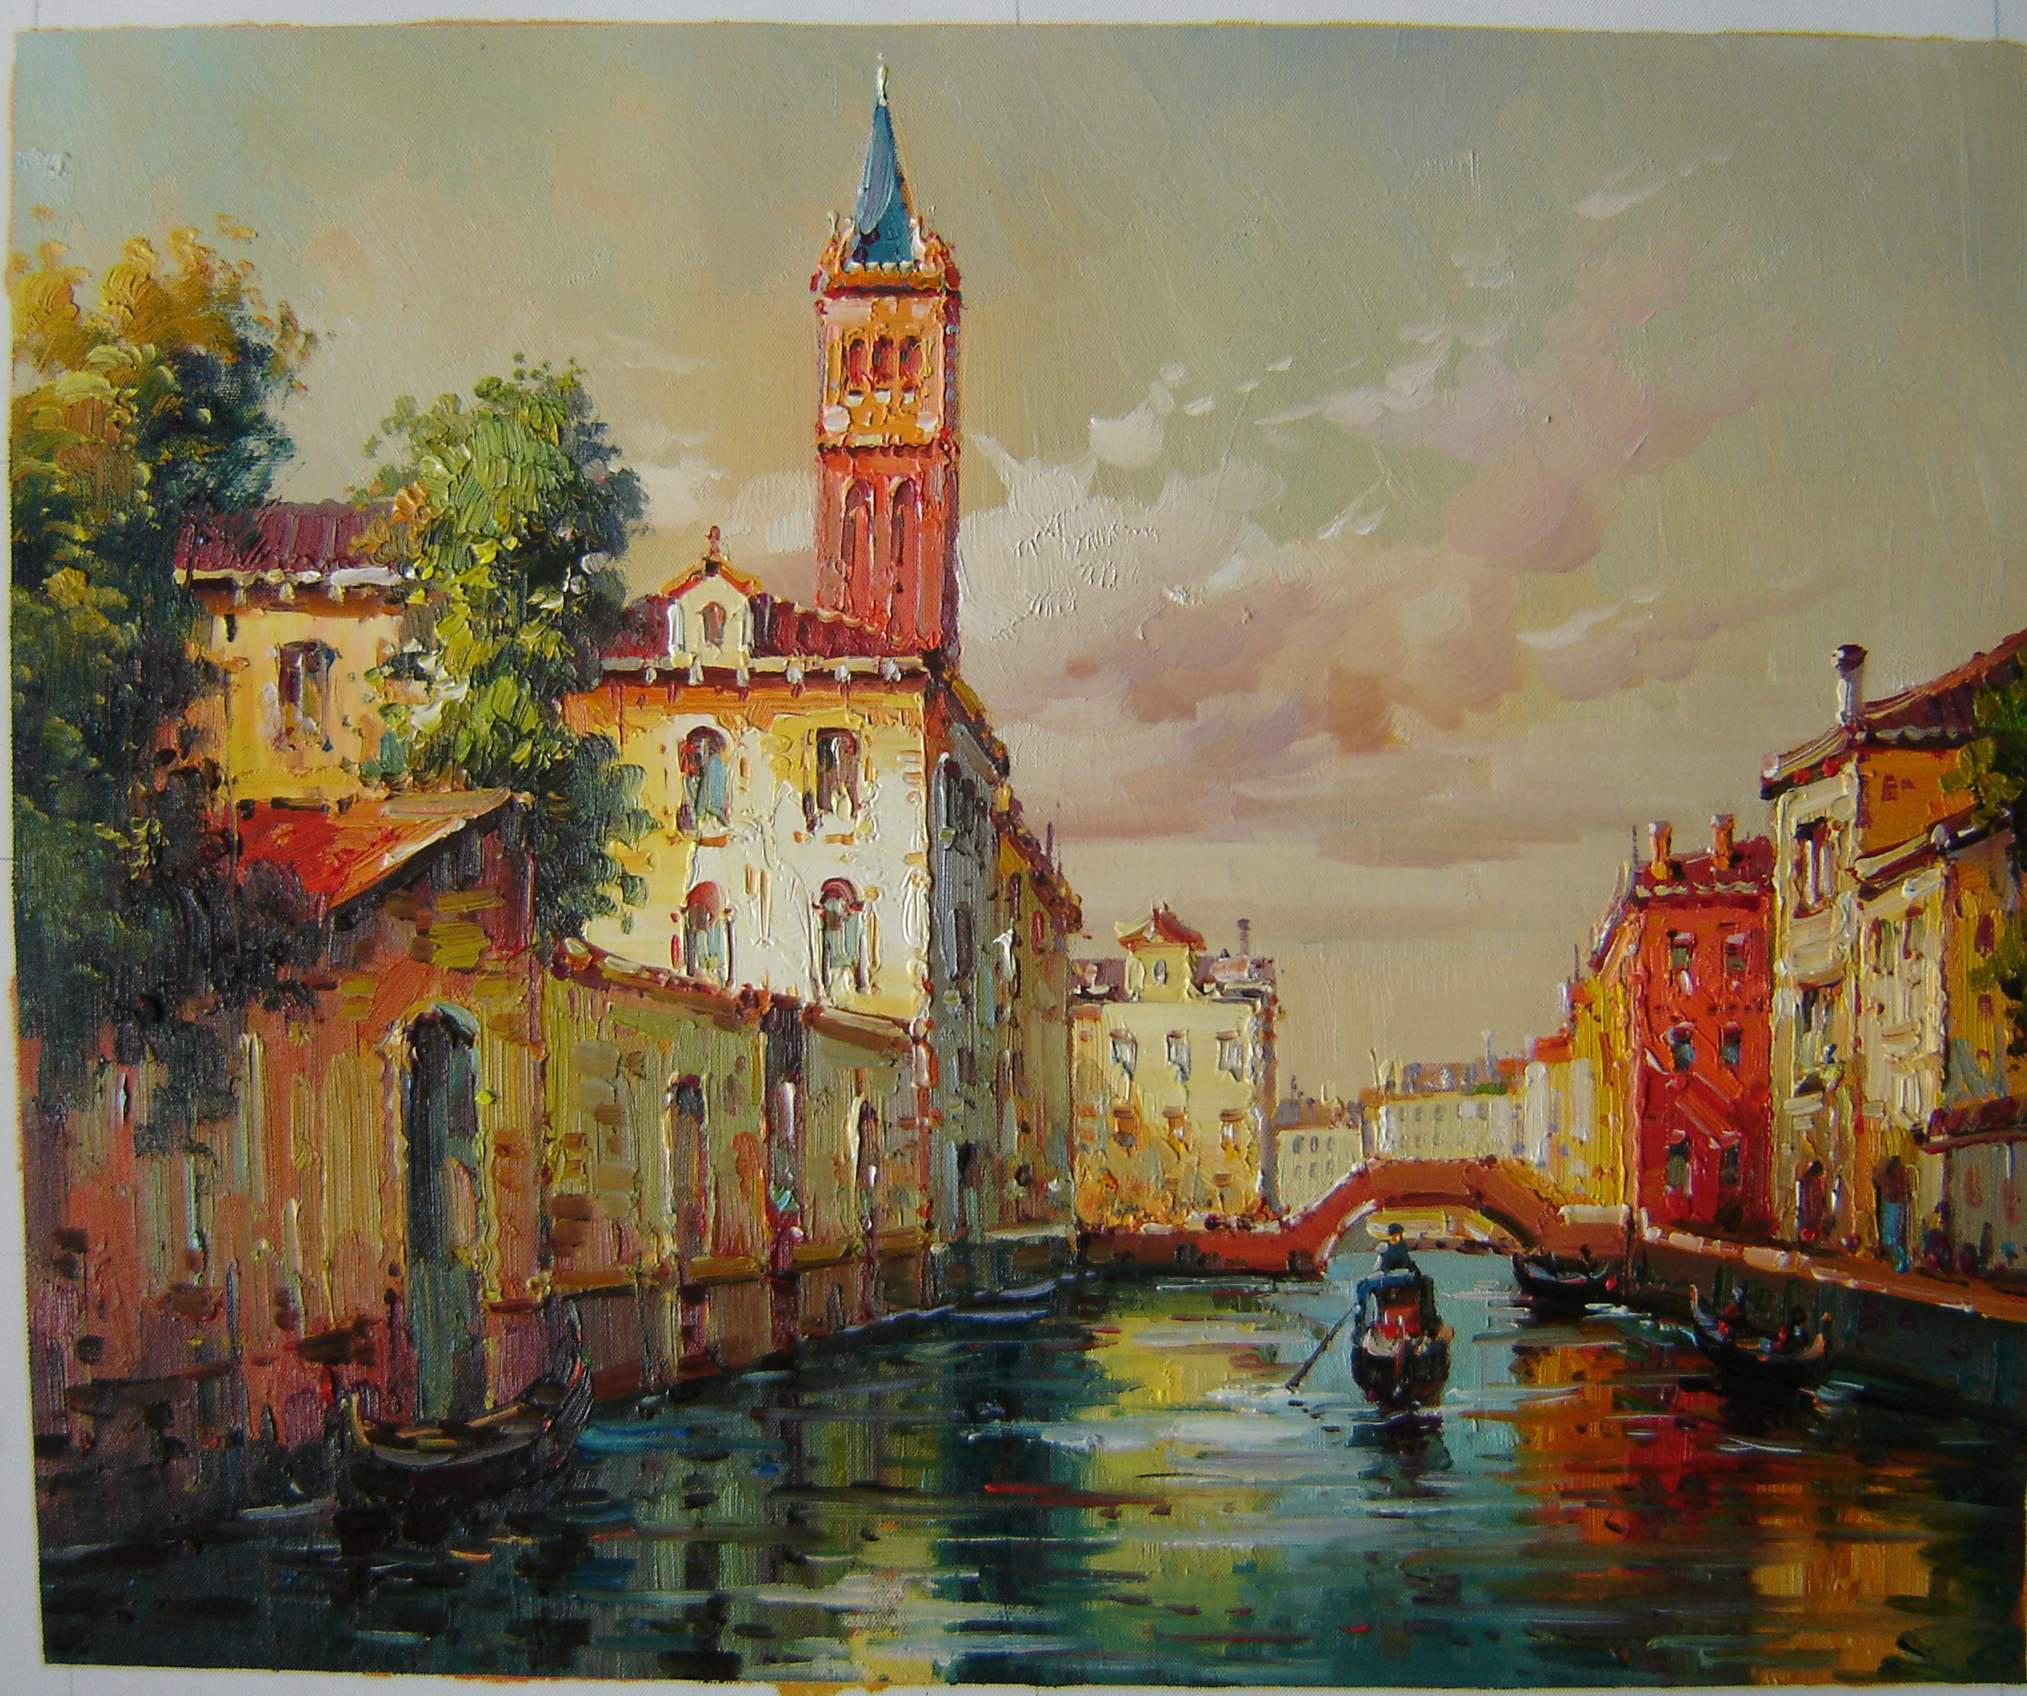 Impression vinice oil painting vinice scenery oil painting for Best online store for artists